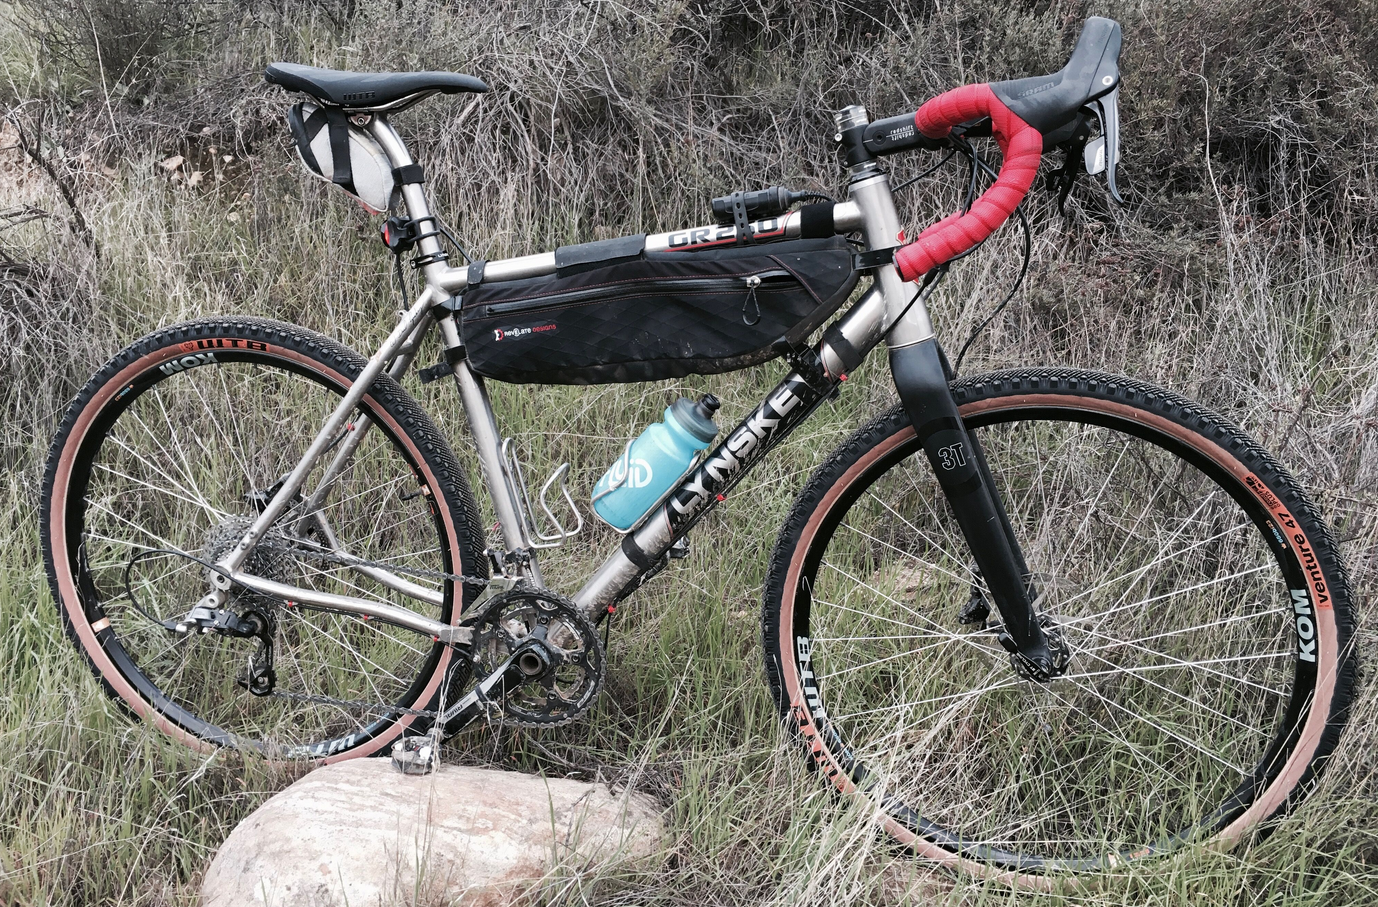 fe18f62068f A Look At Gearing For Gravel- Part 1 -